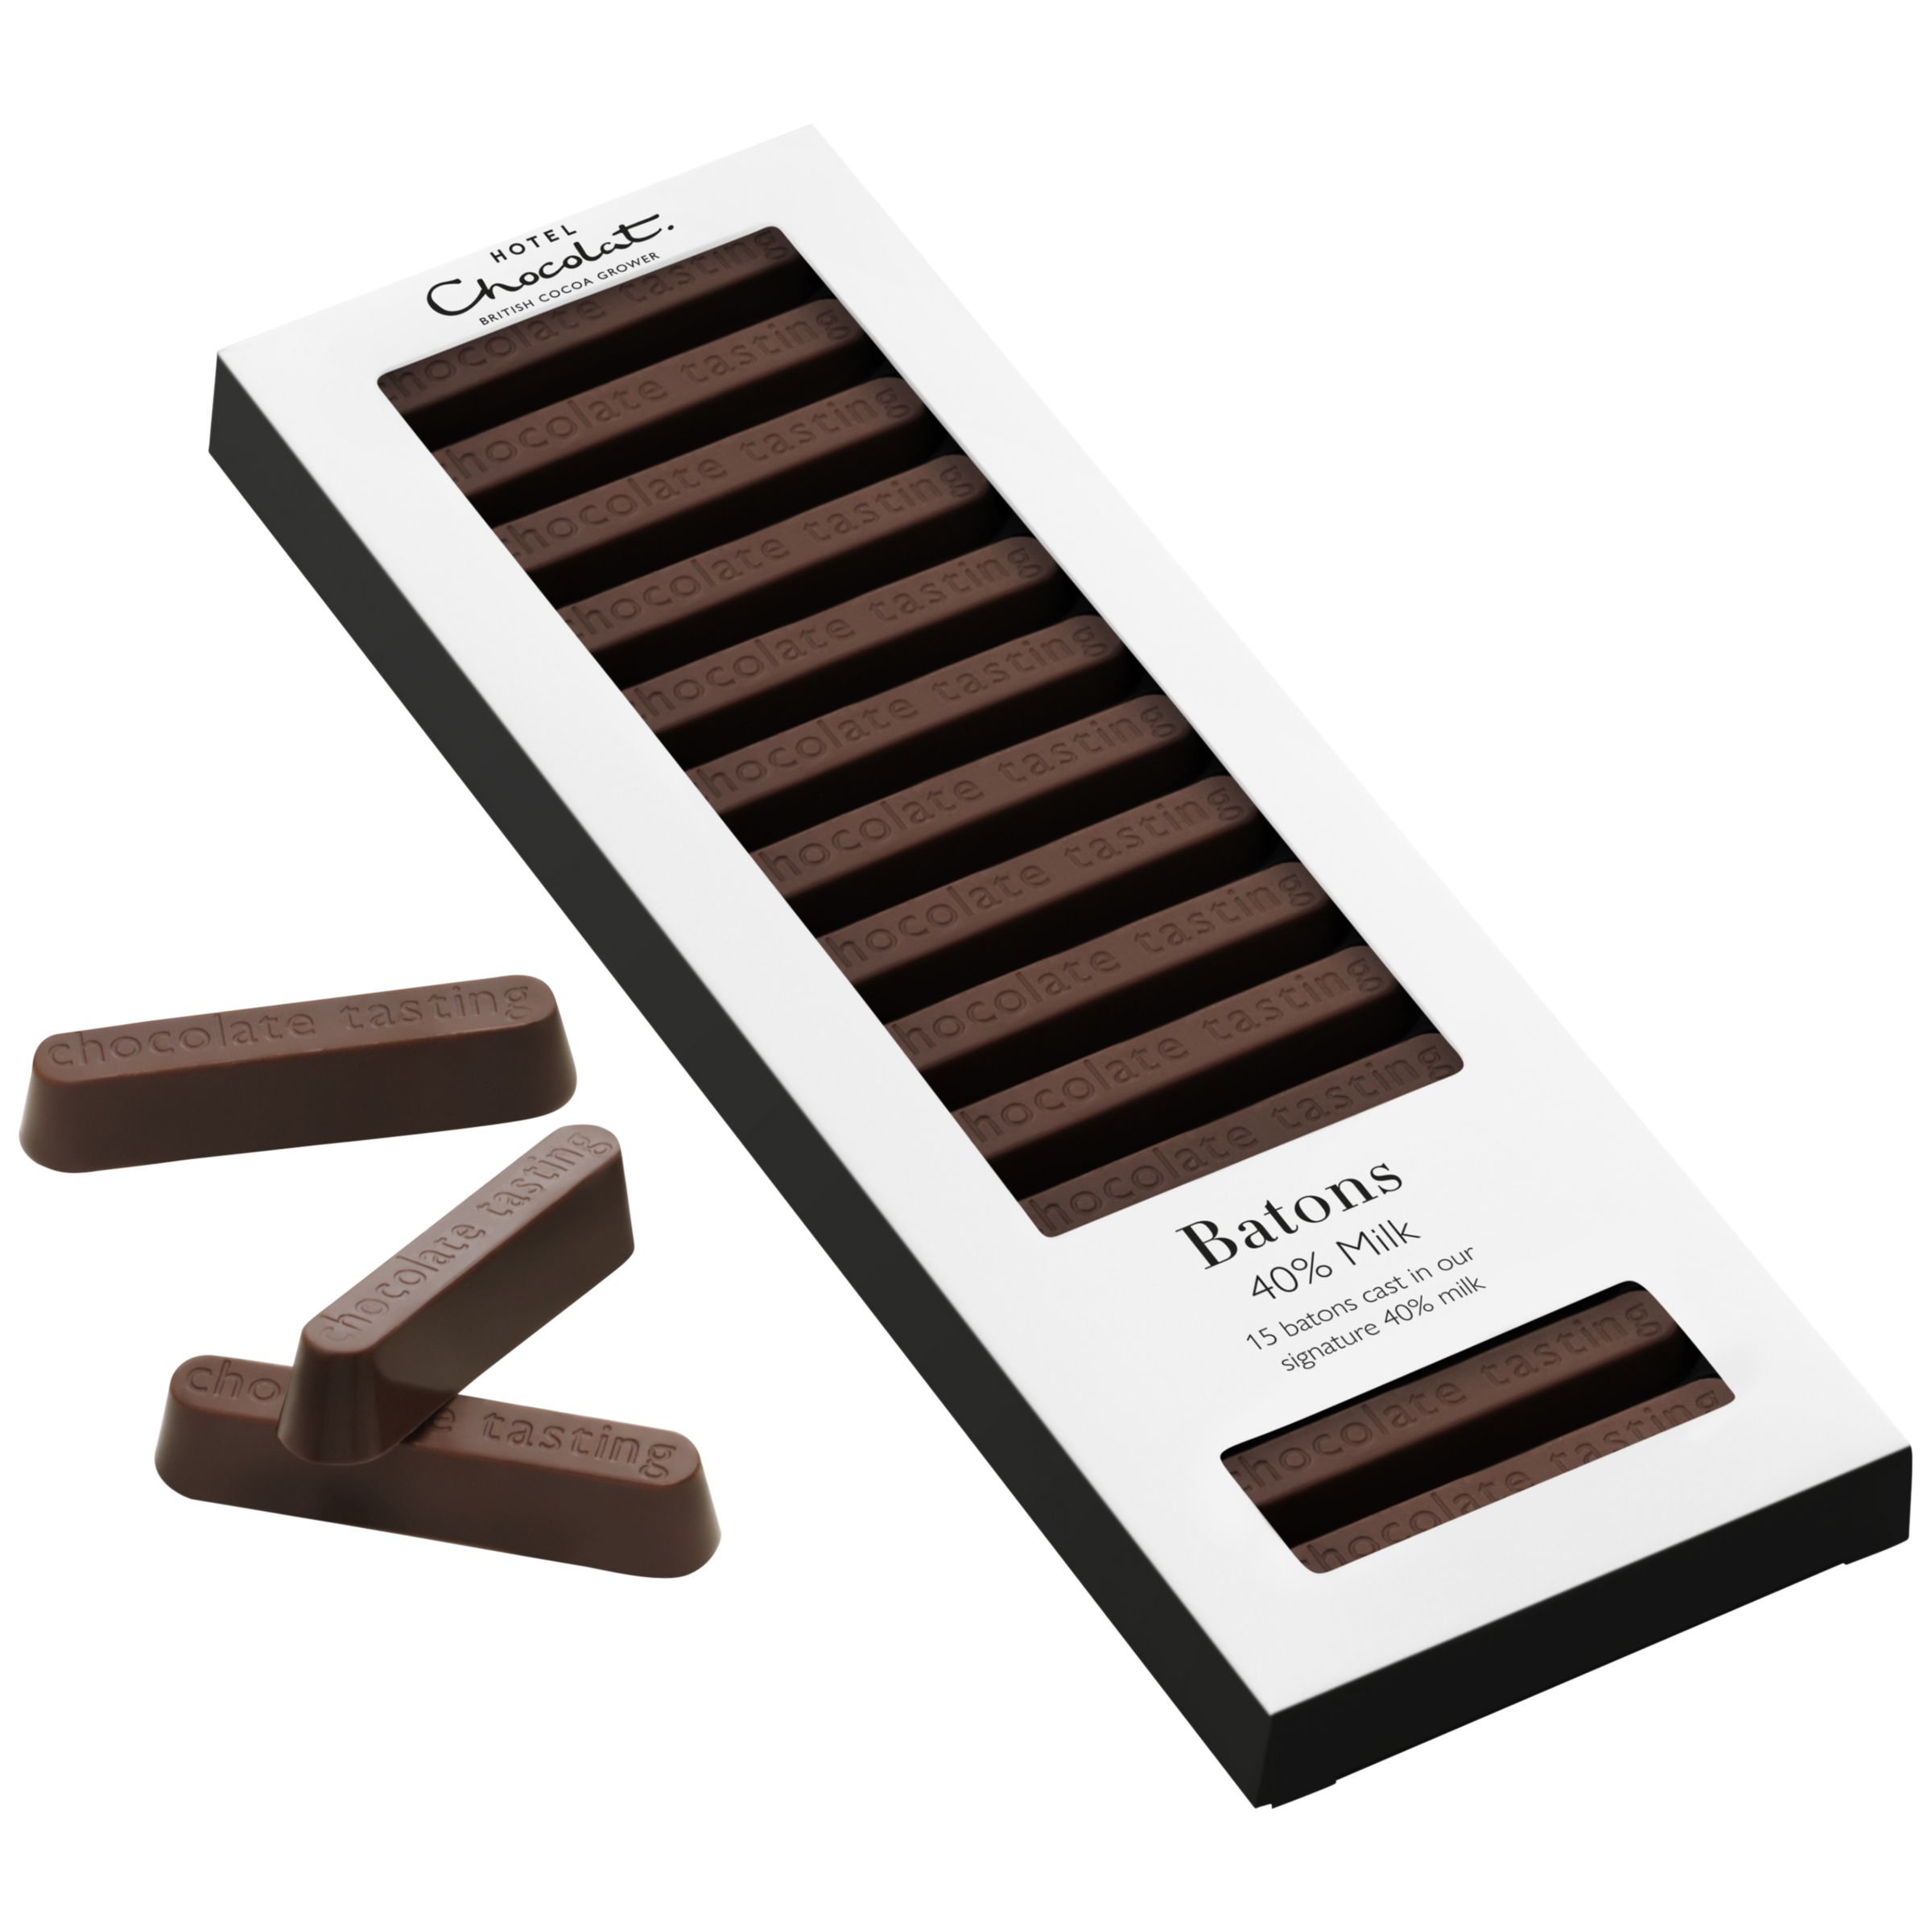 Hotel Chocolat - Luxury Chocolates and Chocolate Gifts